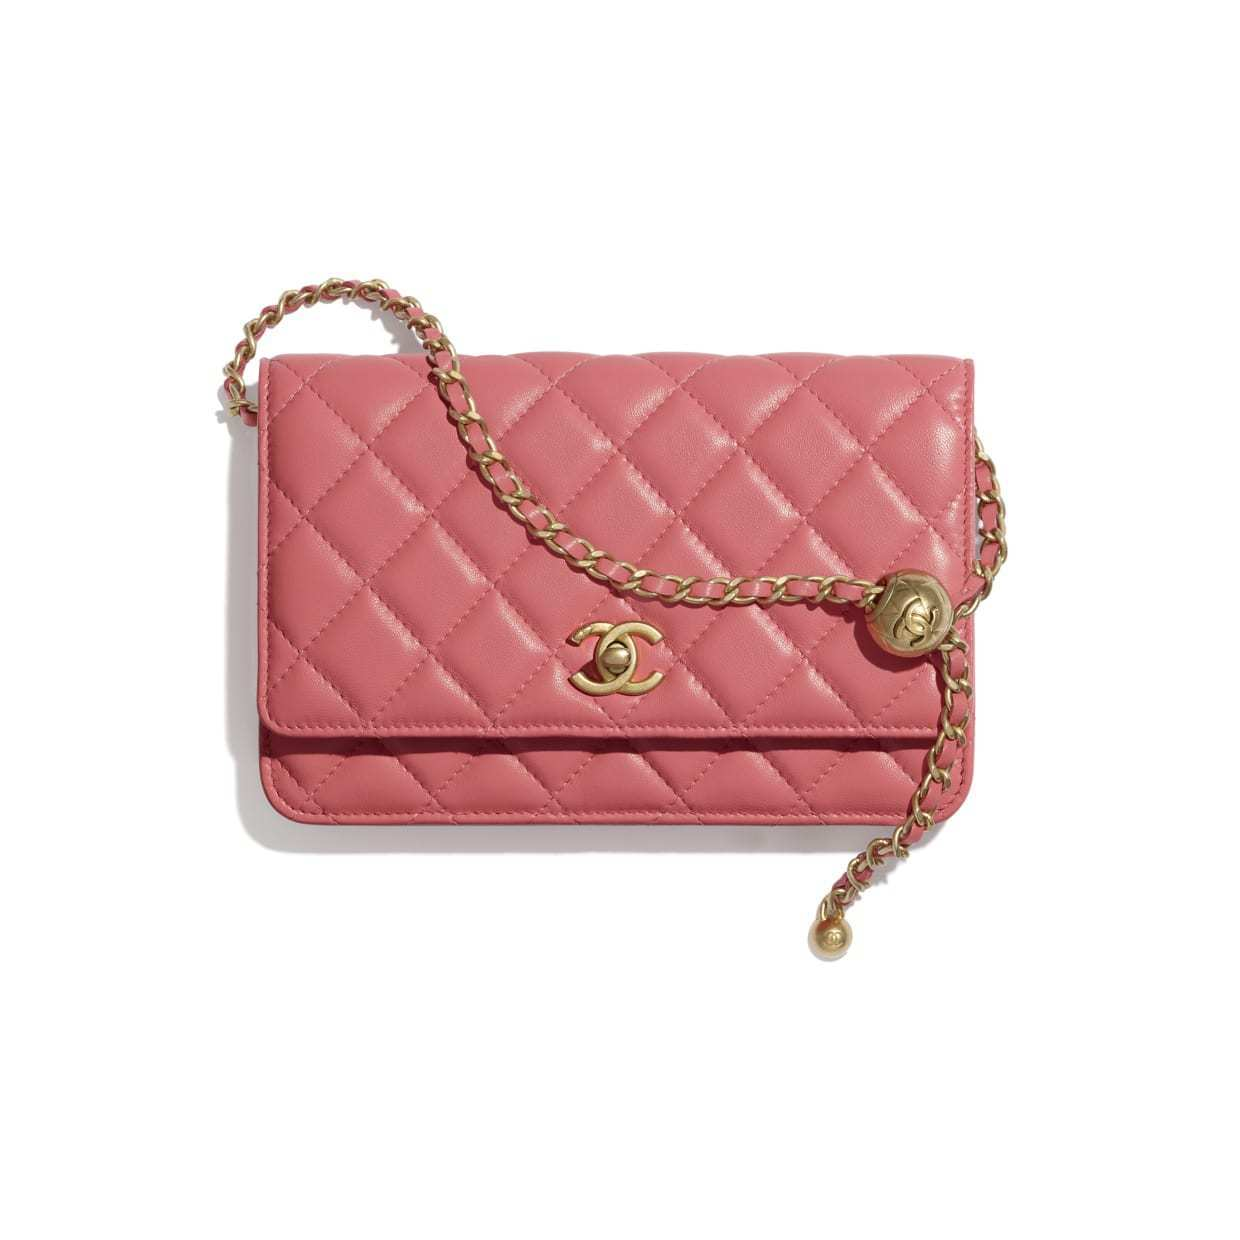 CHANEL CHANEL ☆wallet on chain ☆AP1450 B02916 NA106